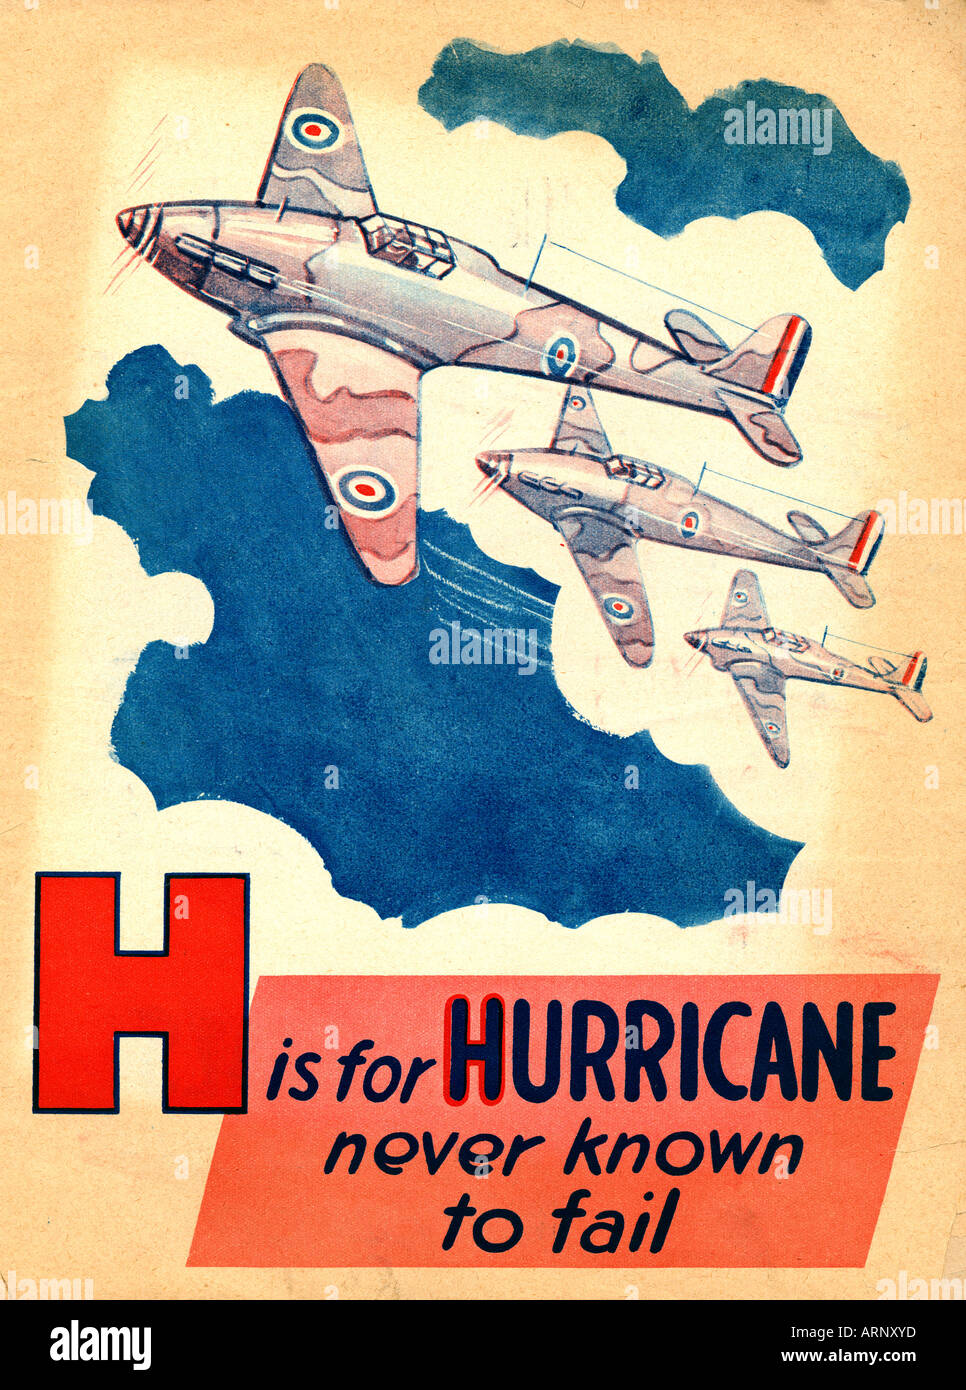 Battle of Britain H is for Hurricane never known to fail British childrens alphabet book from WW II of the iconic fighter - Stock Image